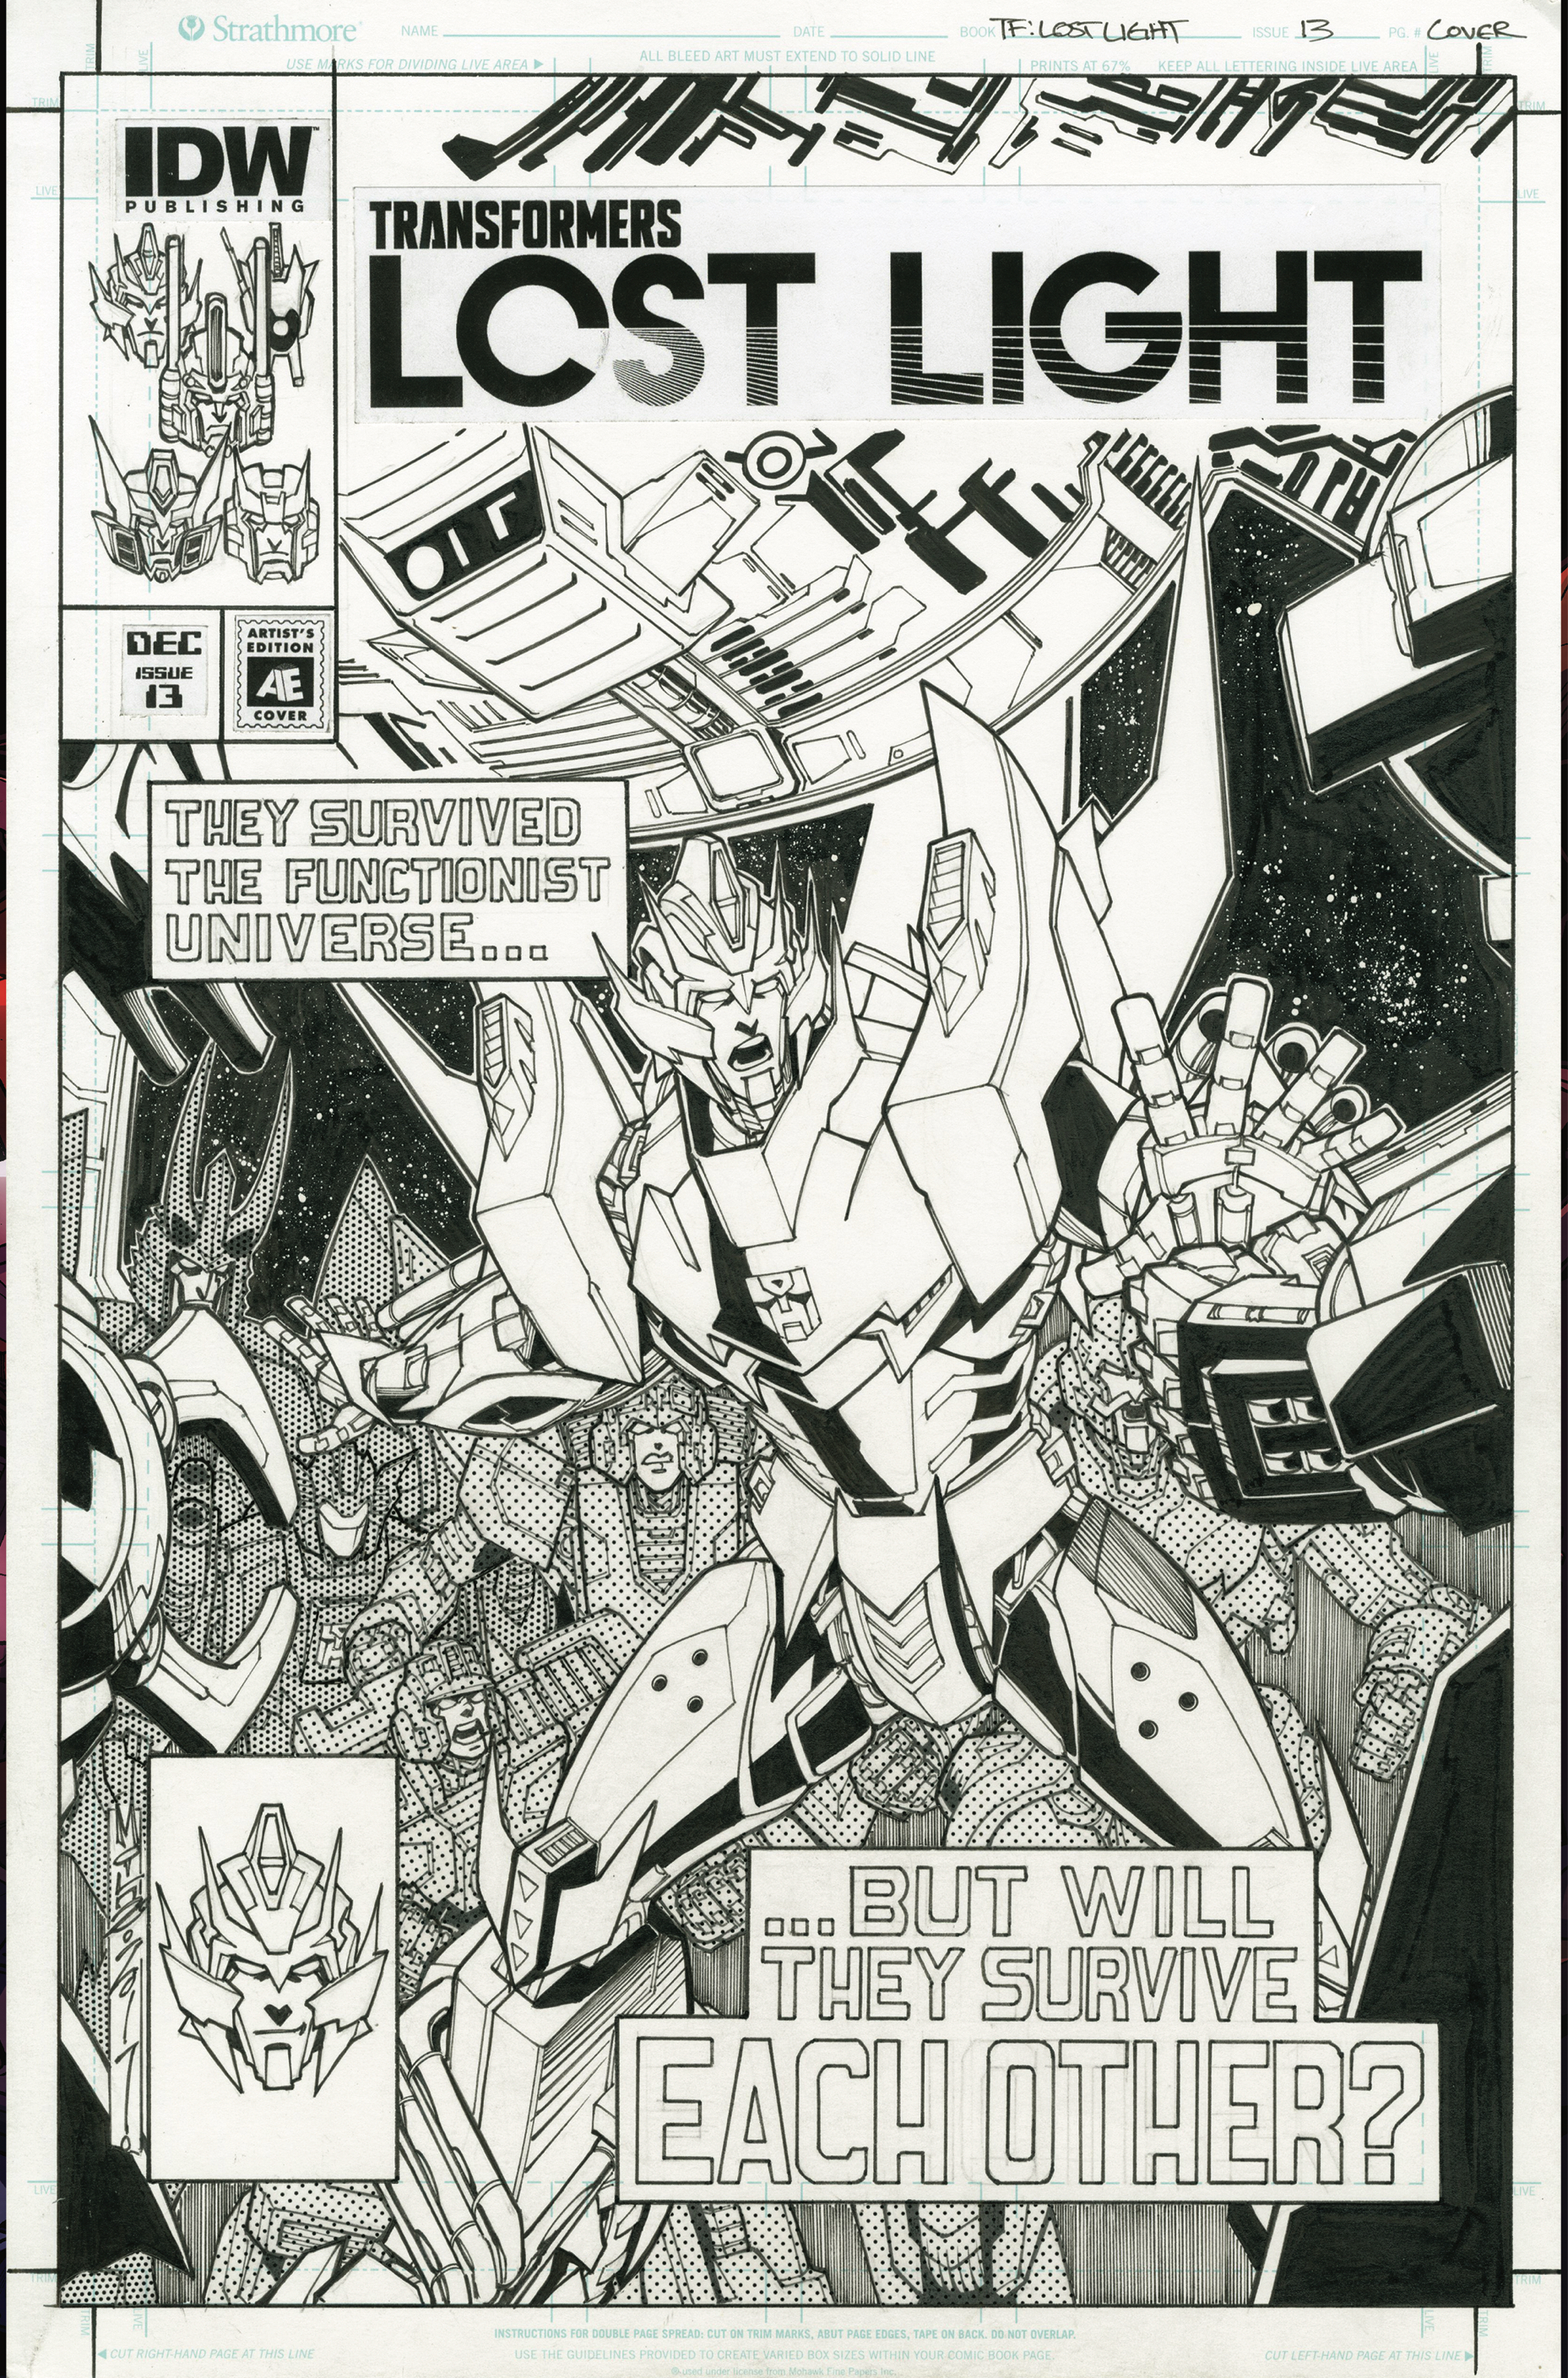 TRANSFORMERS LOST LIGHT #13 CVR C ARTIST ED MILNE